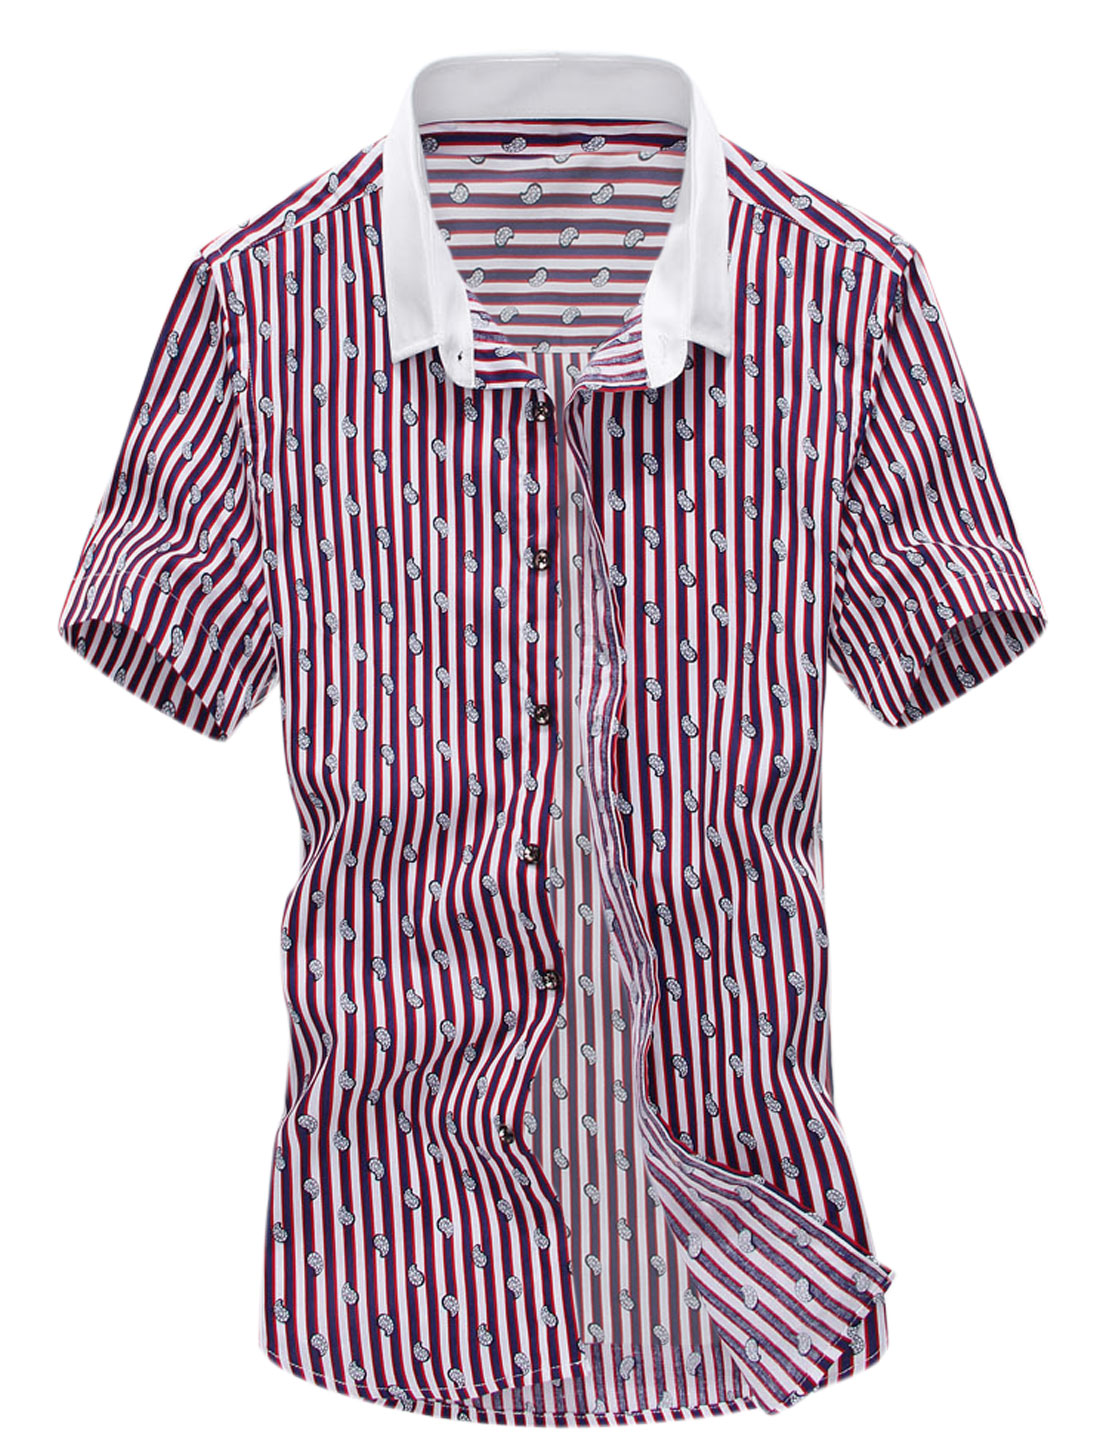 Man Vertical Stripes Paisley Pattern Point Collar Short Sleeves Shirt Red White M